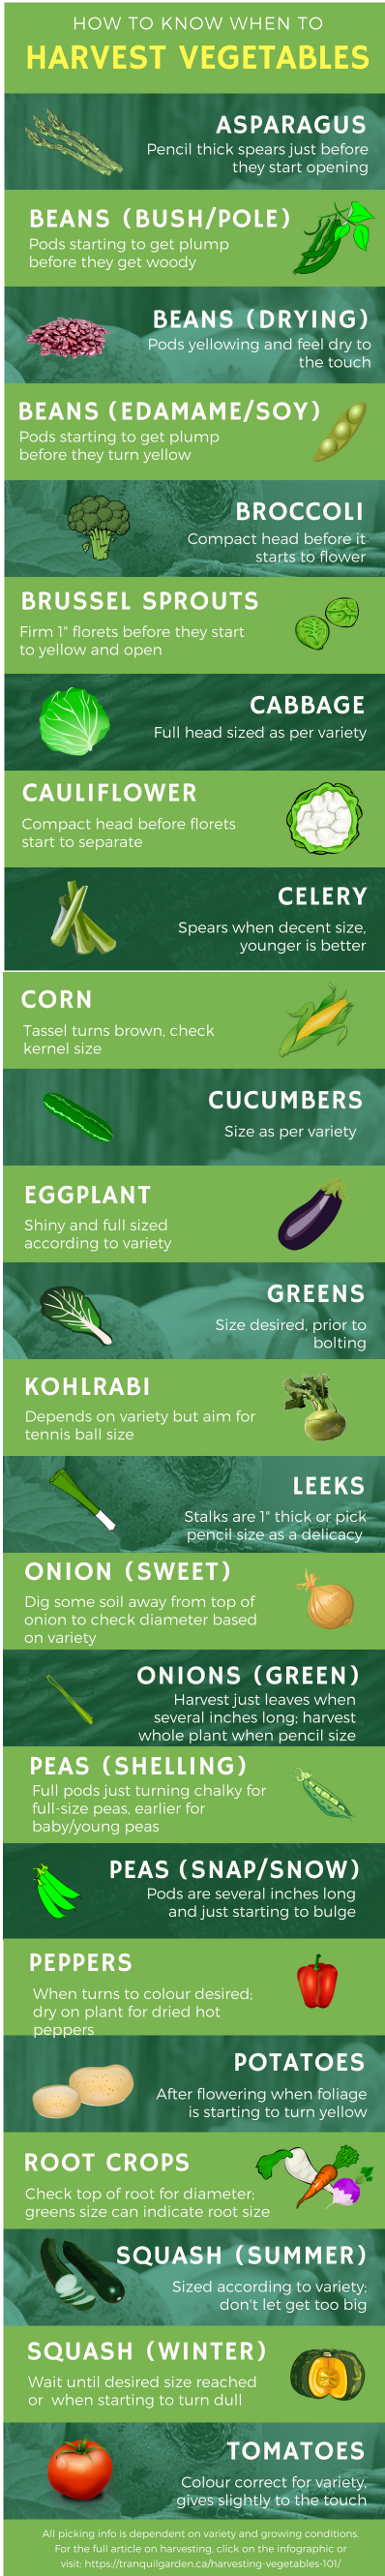 Infographic - When to Harvest Vegetables